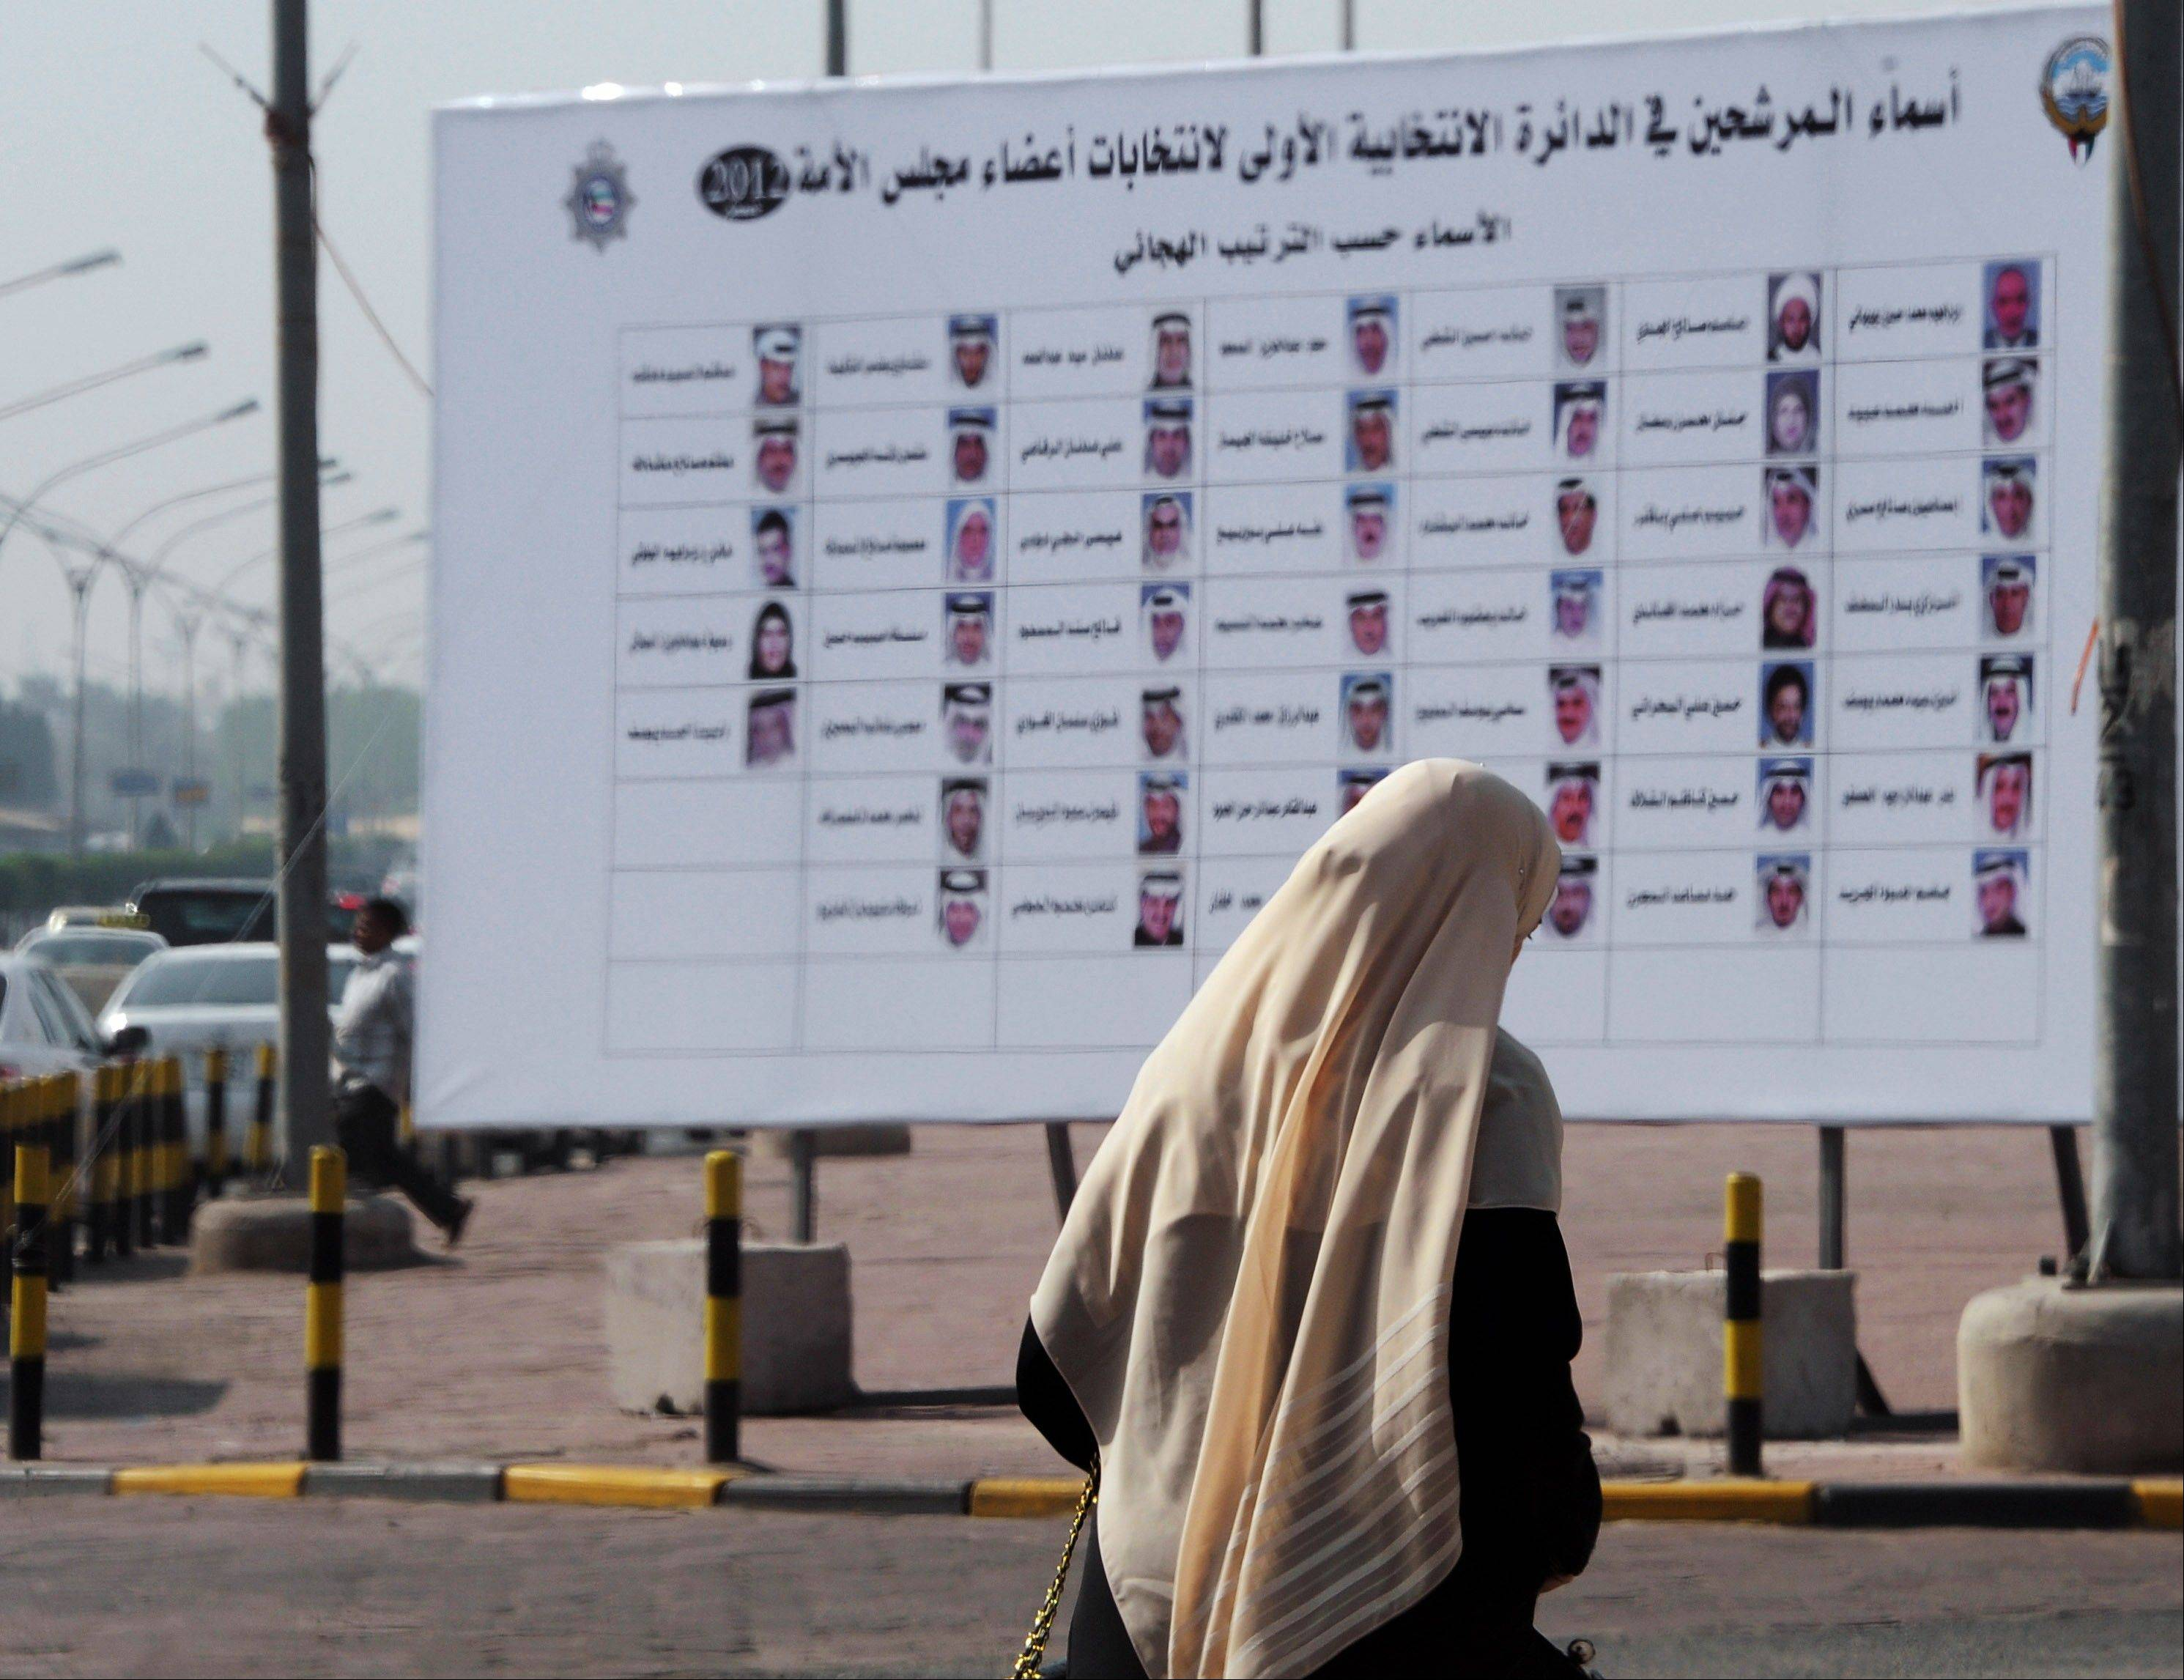 A Kuwaiti woman walks past a board with the names and photos of next December�s election candidates in Salwa, Kuwait. The past year has brought almost nonstop � and highly complex � political turmoil.